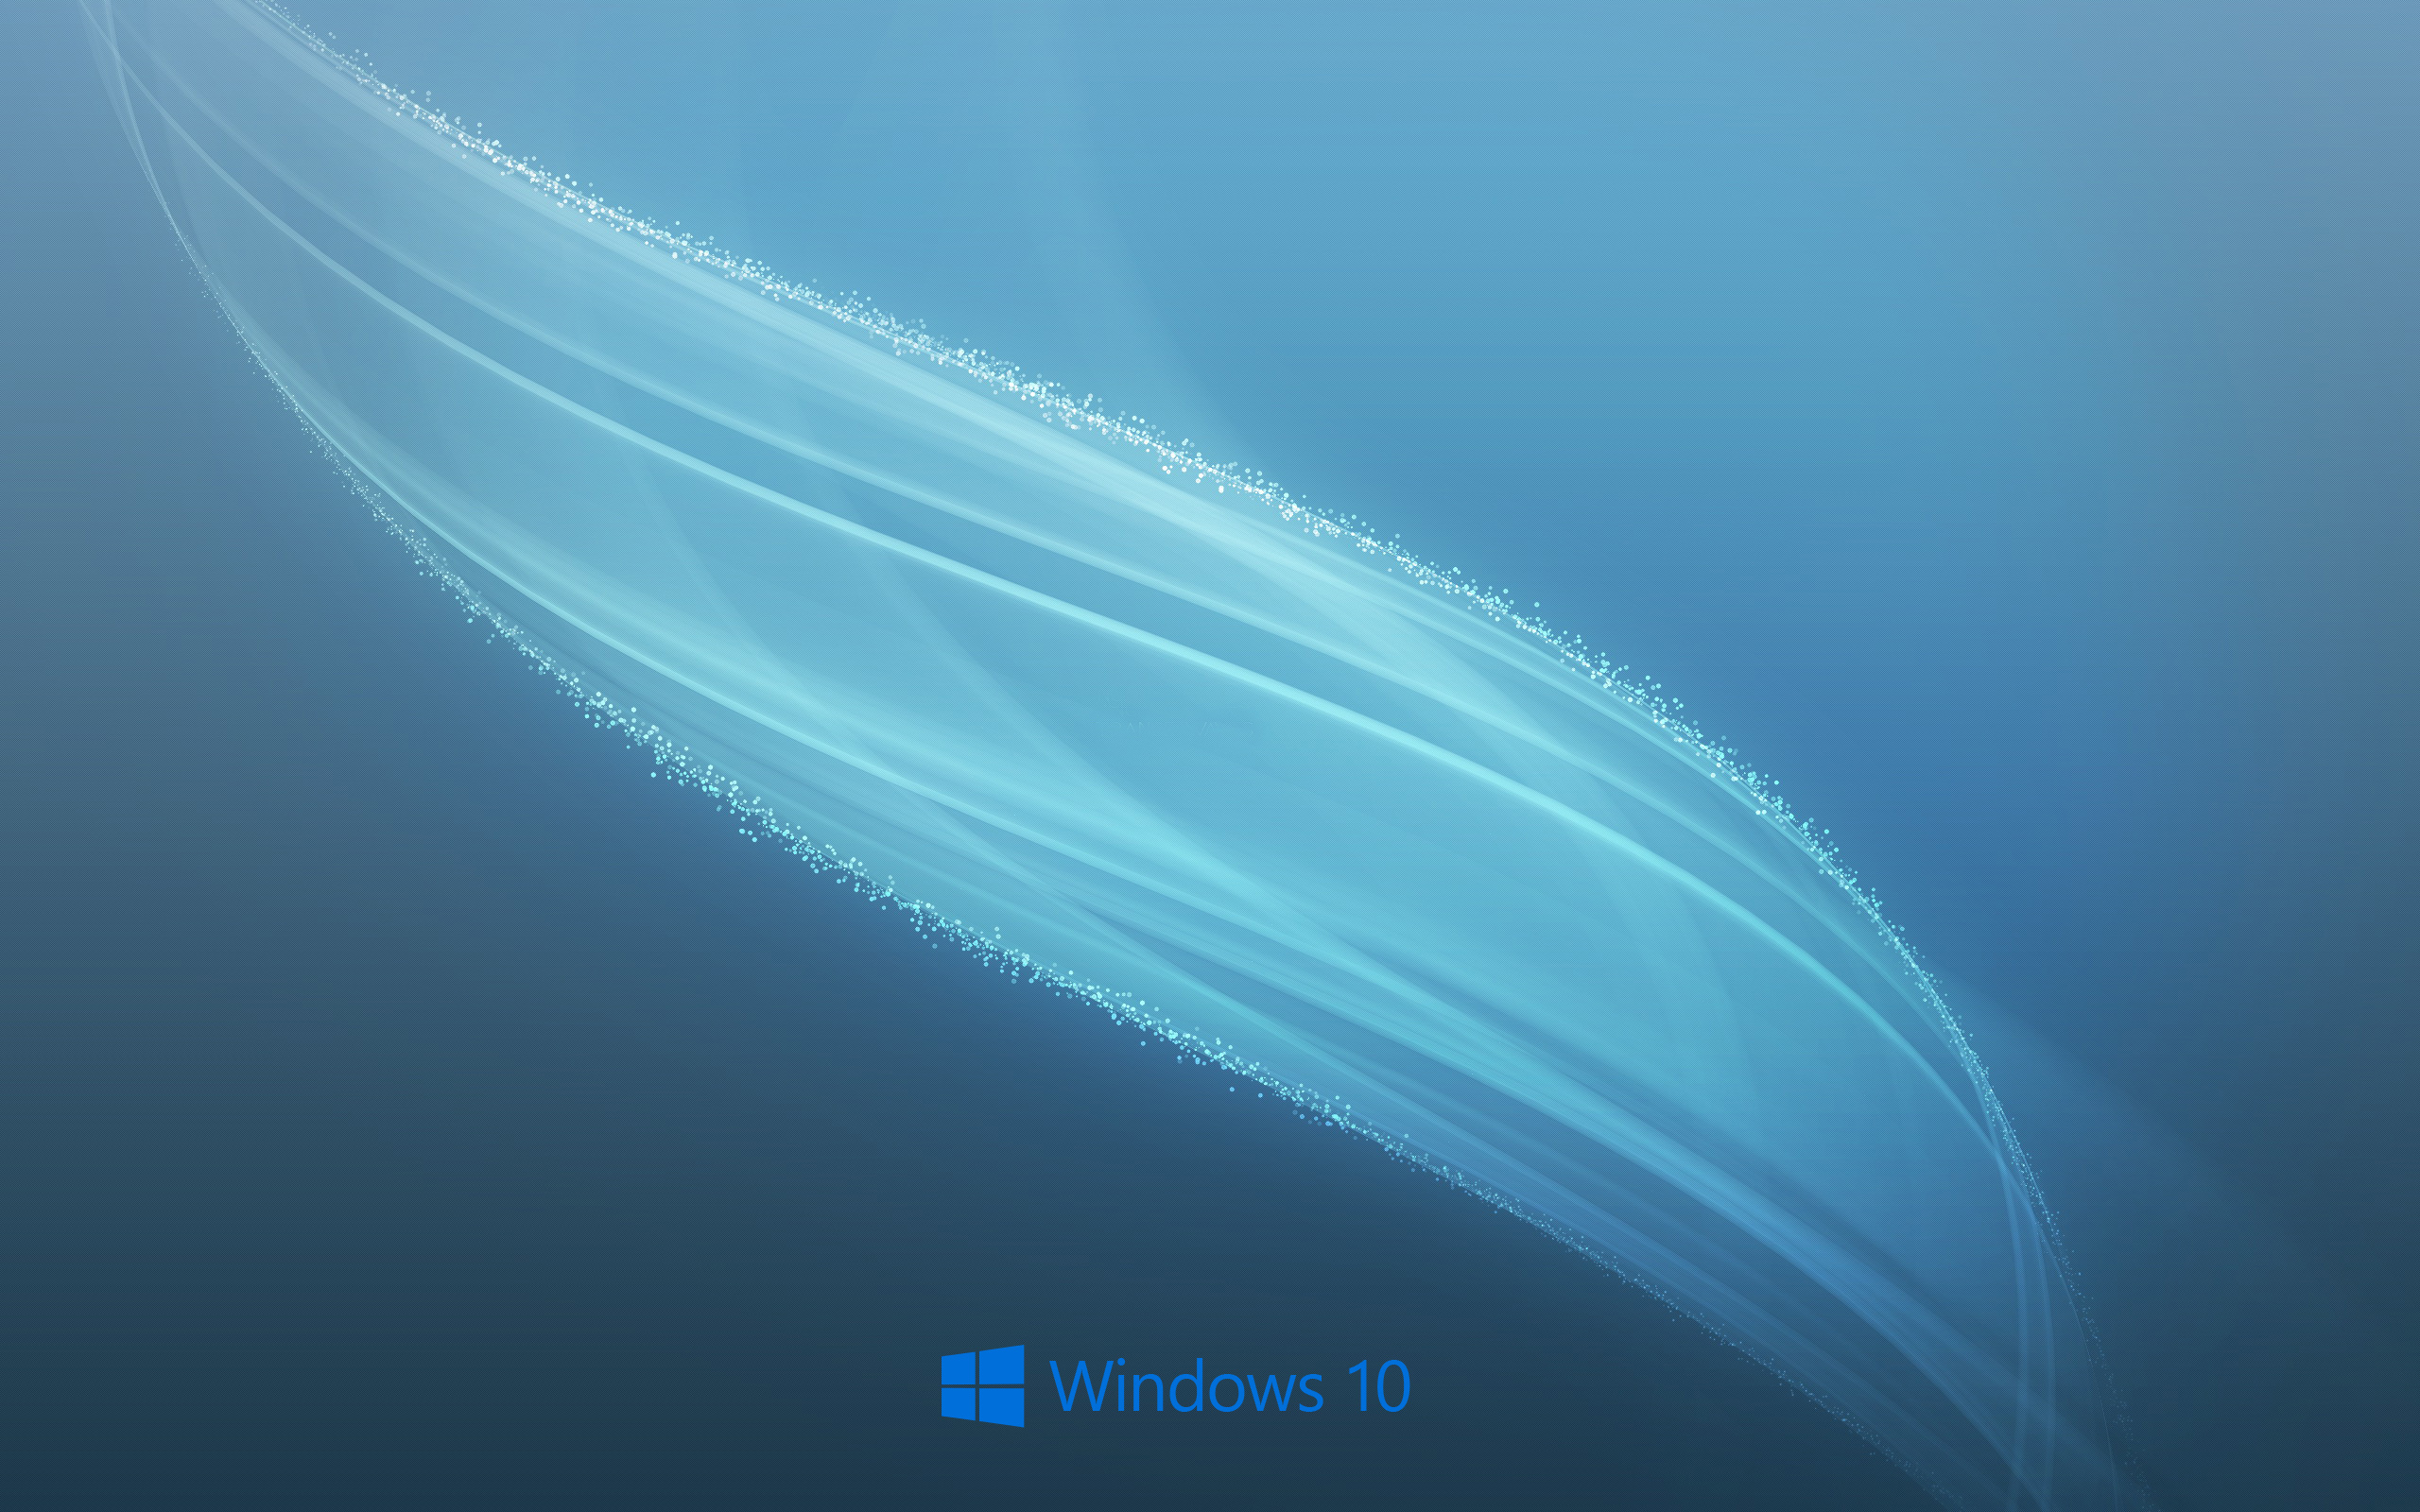 wallpaper pattern in blue wave for windows 10 HD Wallpapers for 2560x1600